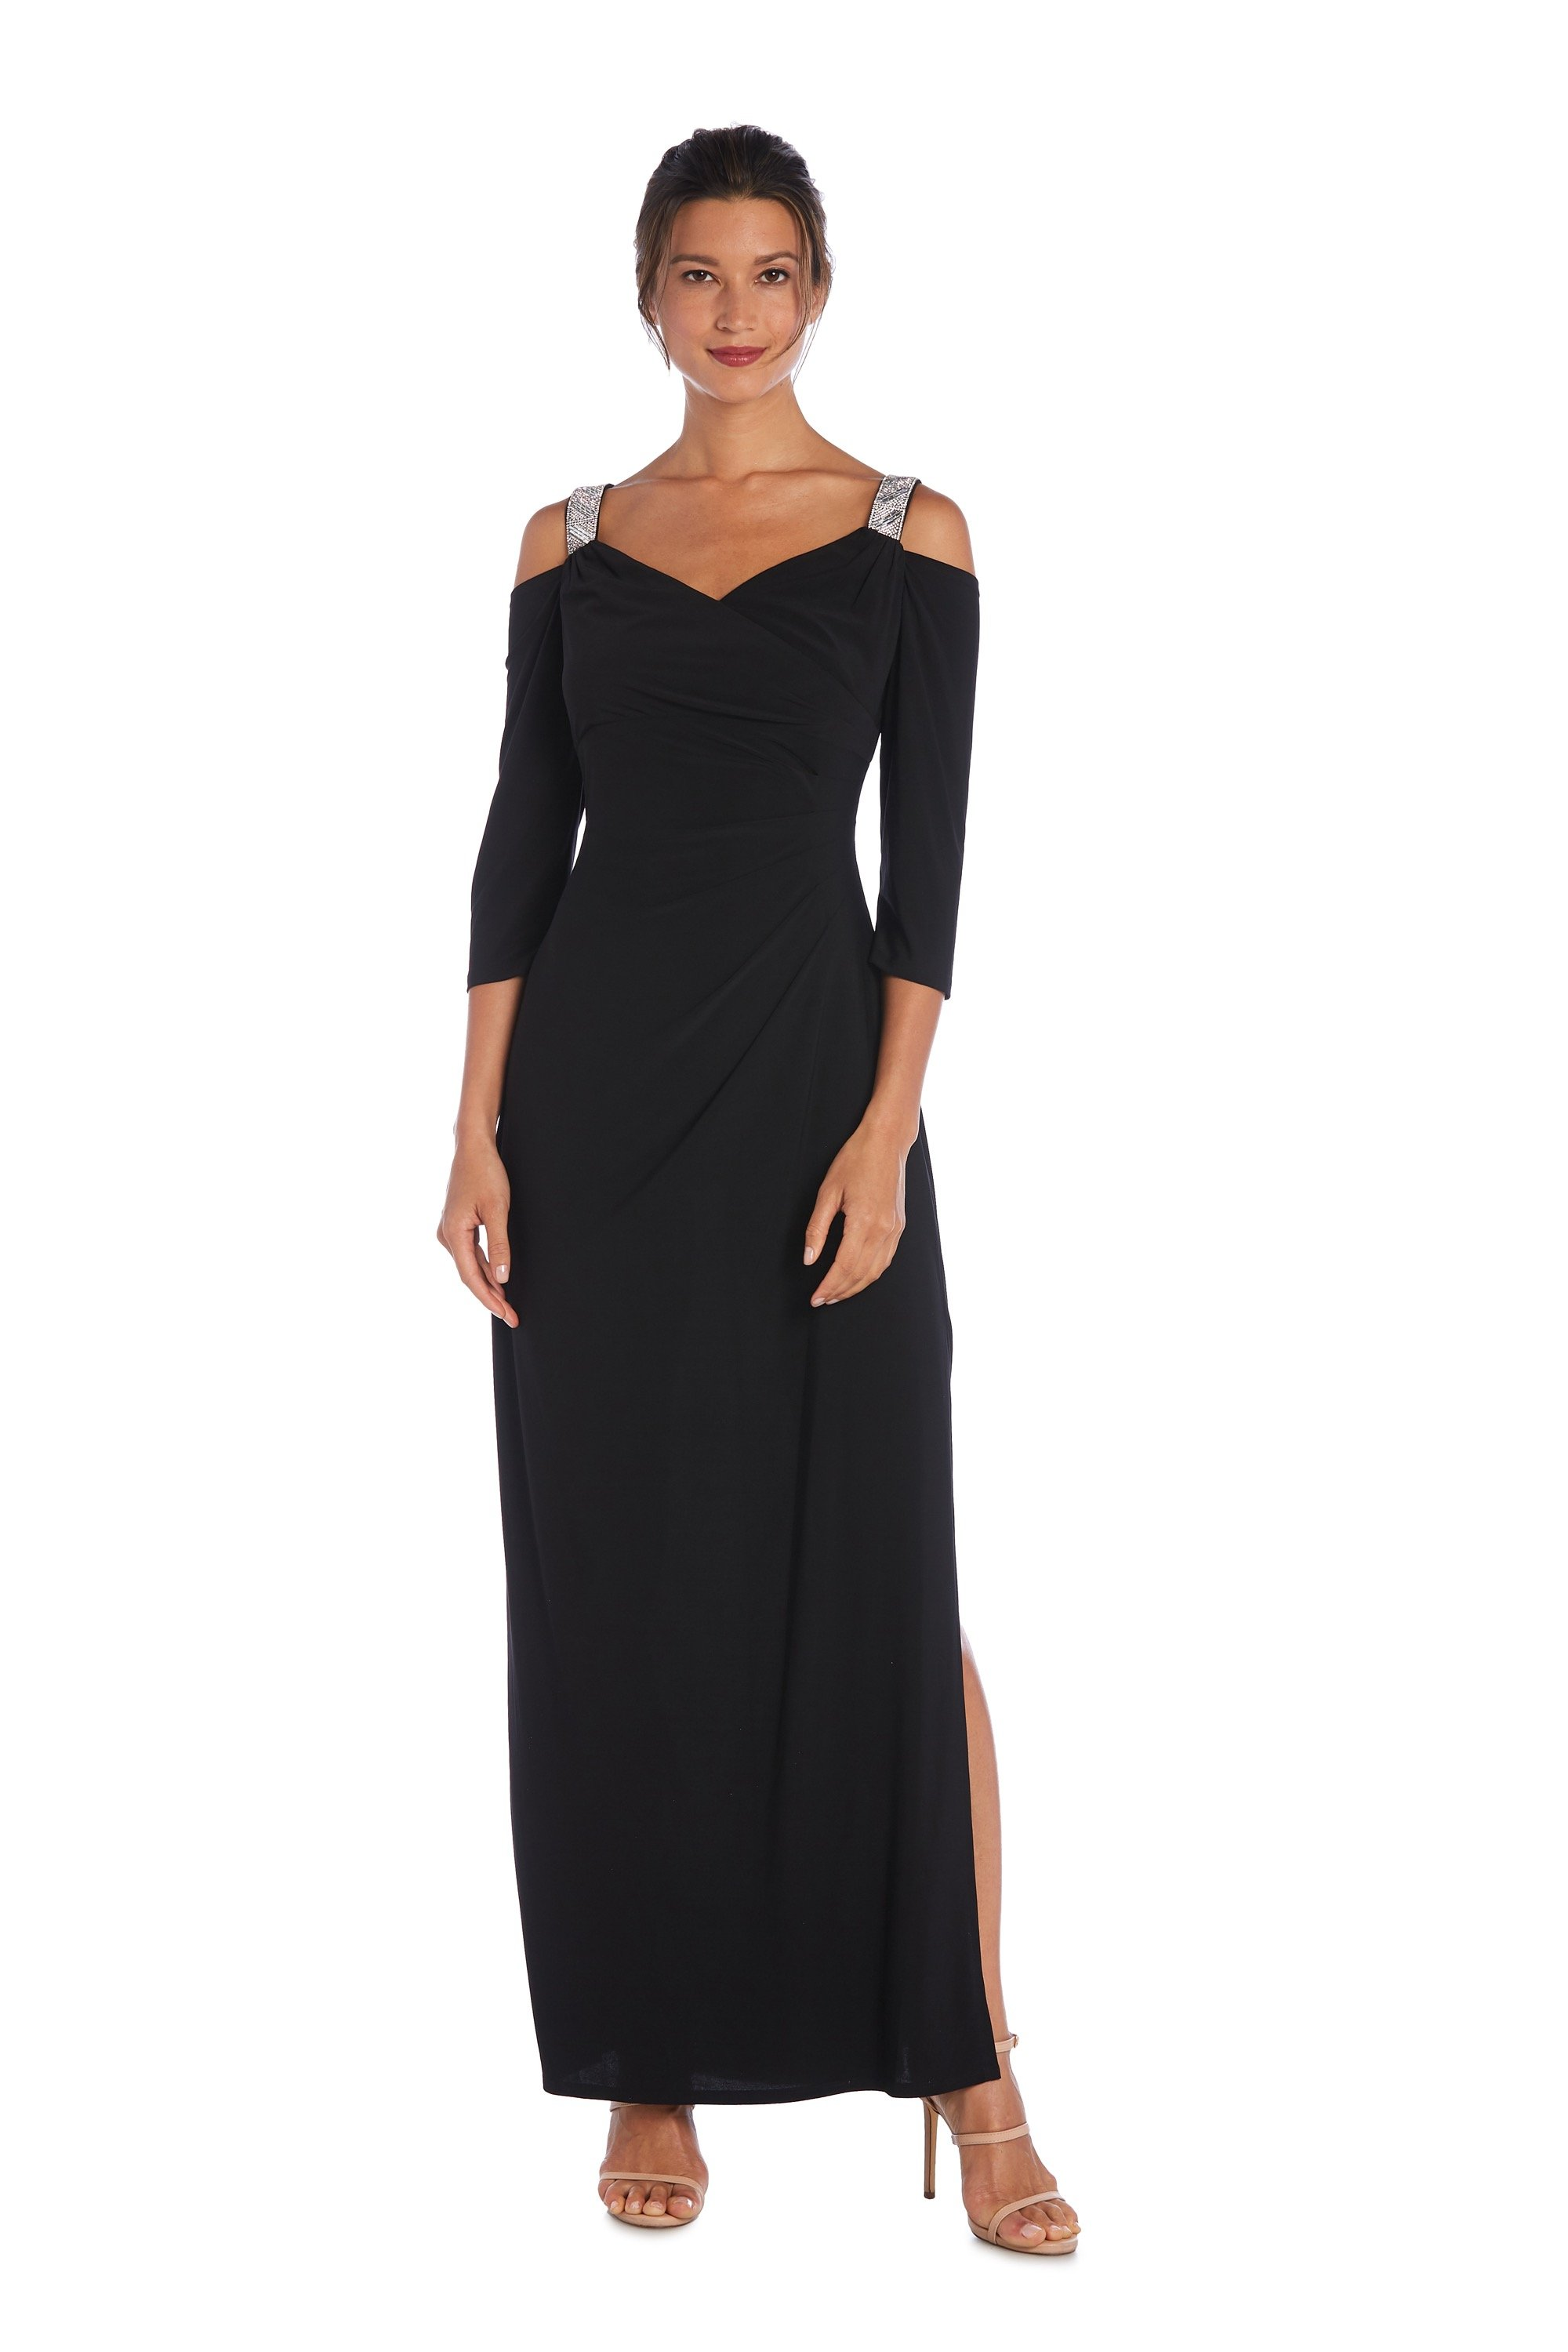 Cold Shoulder Embellished Strap Long Gown -Black - Front